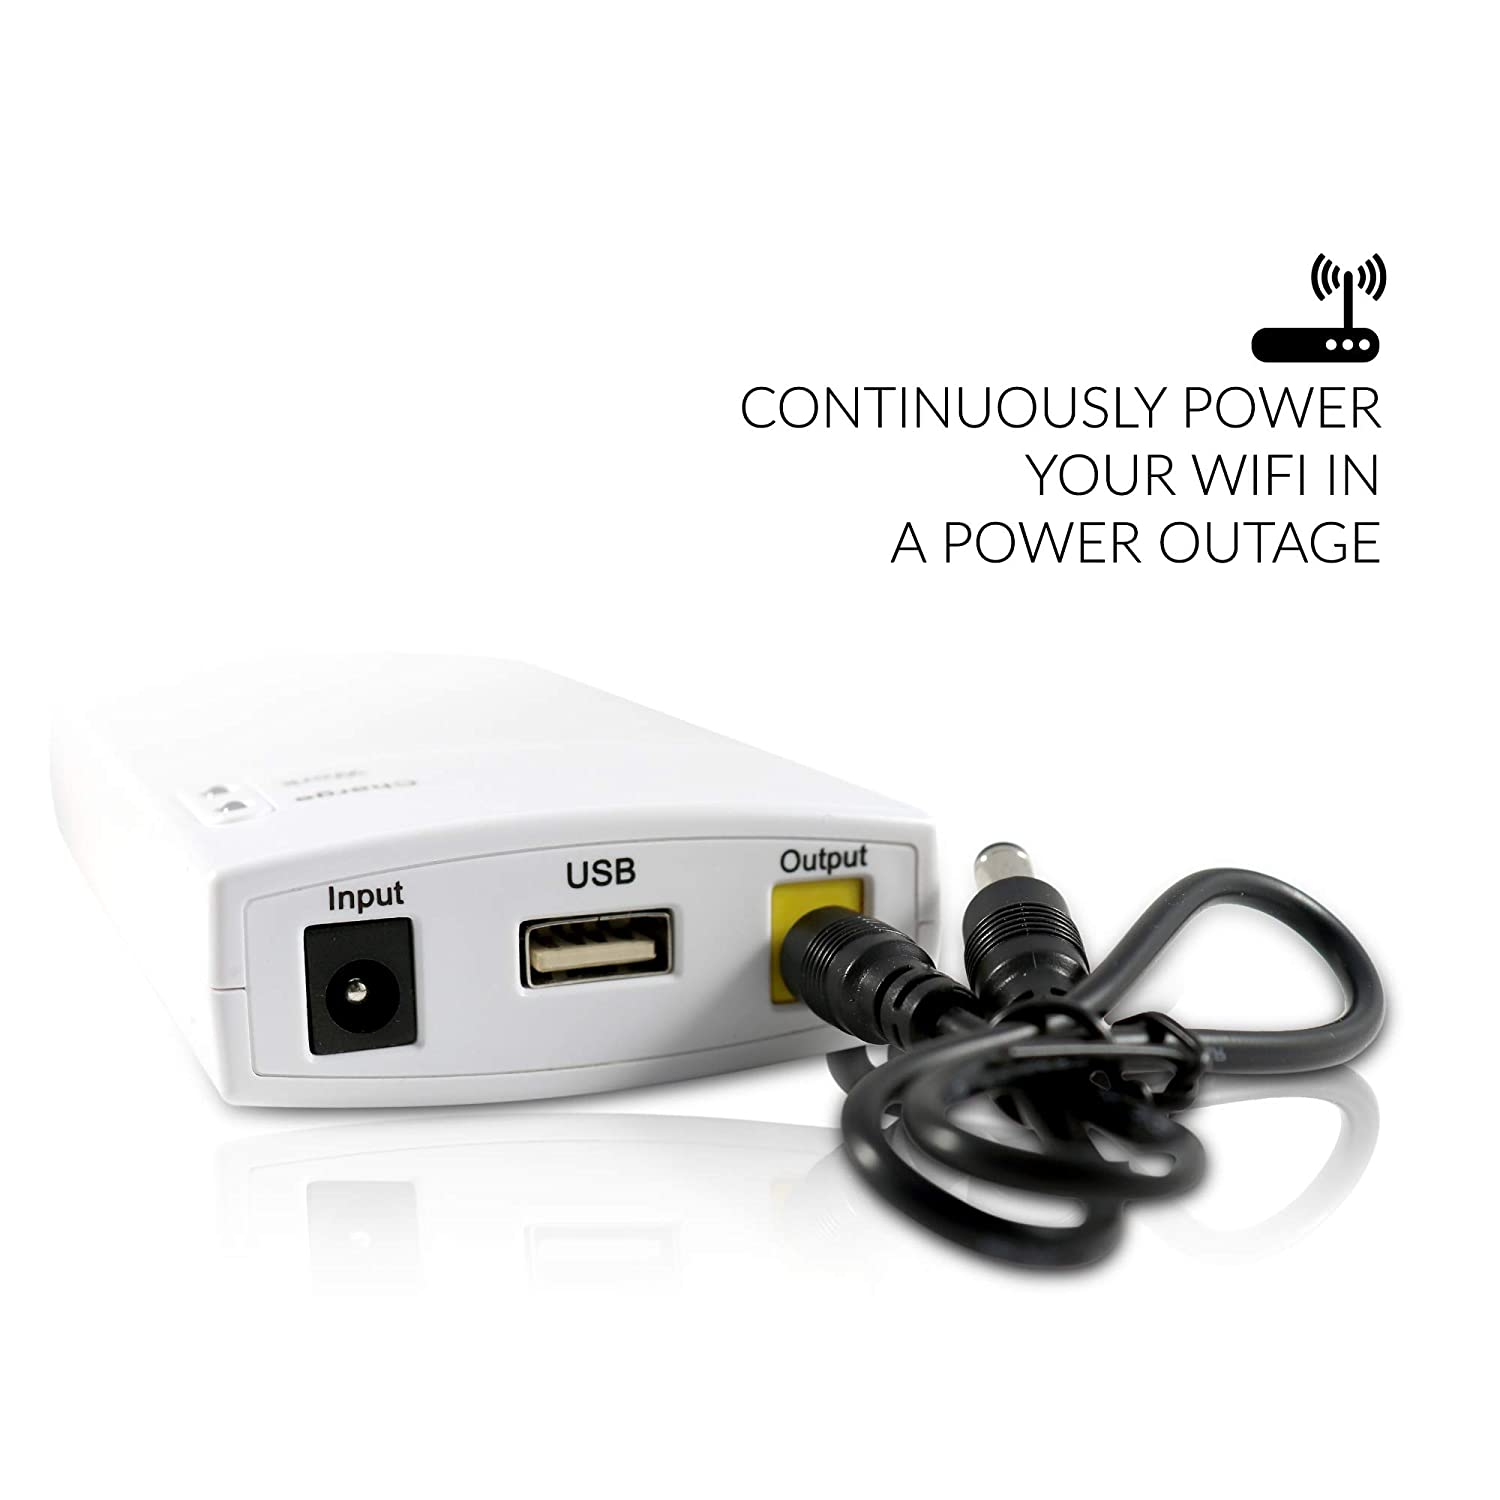 Quick Charge Wi-Fi Router /& DSL//Cable Modem 12V DC Backup Power Source 7800mAh Lithium-Ion Auto-Switching Raspberry Pi and Voice Assistant Compatible Konnected Mini-UPS Battery Backup